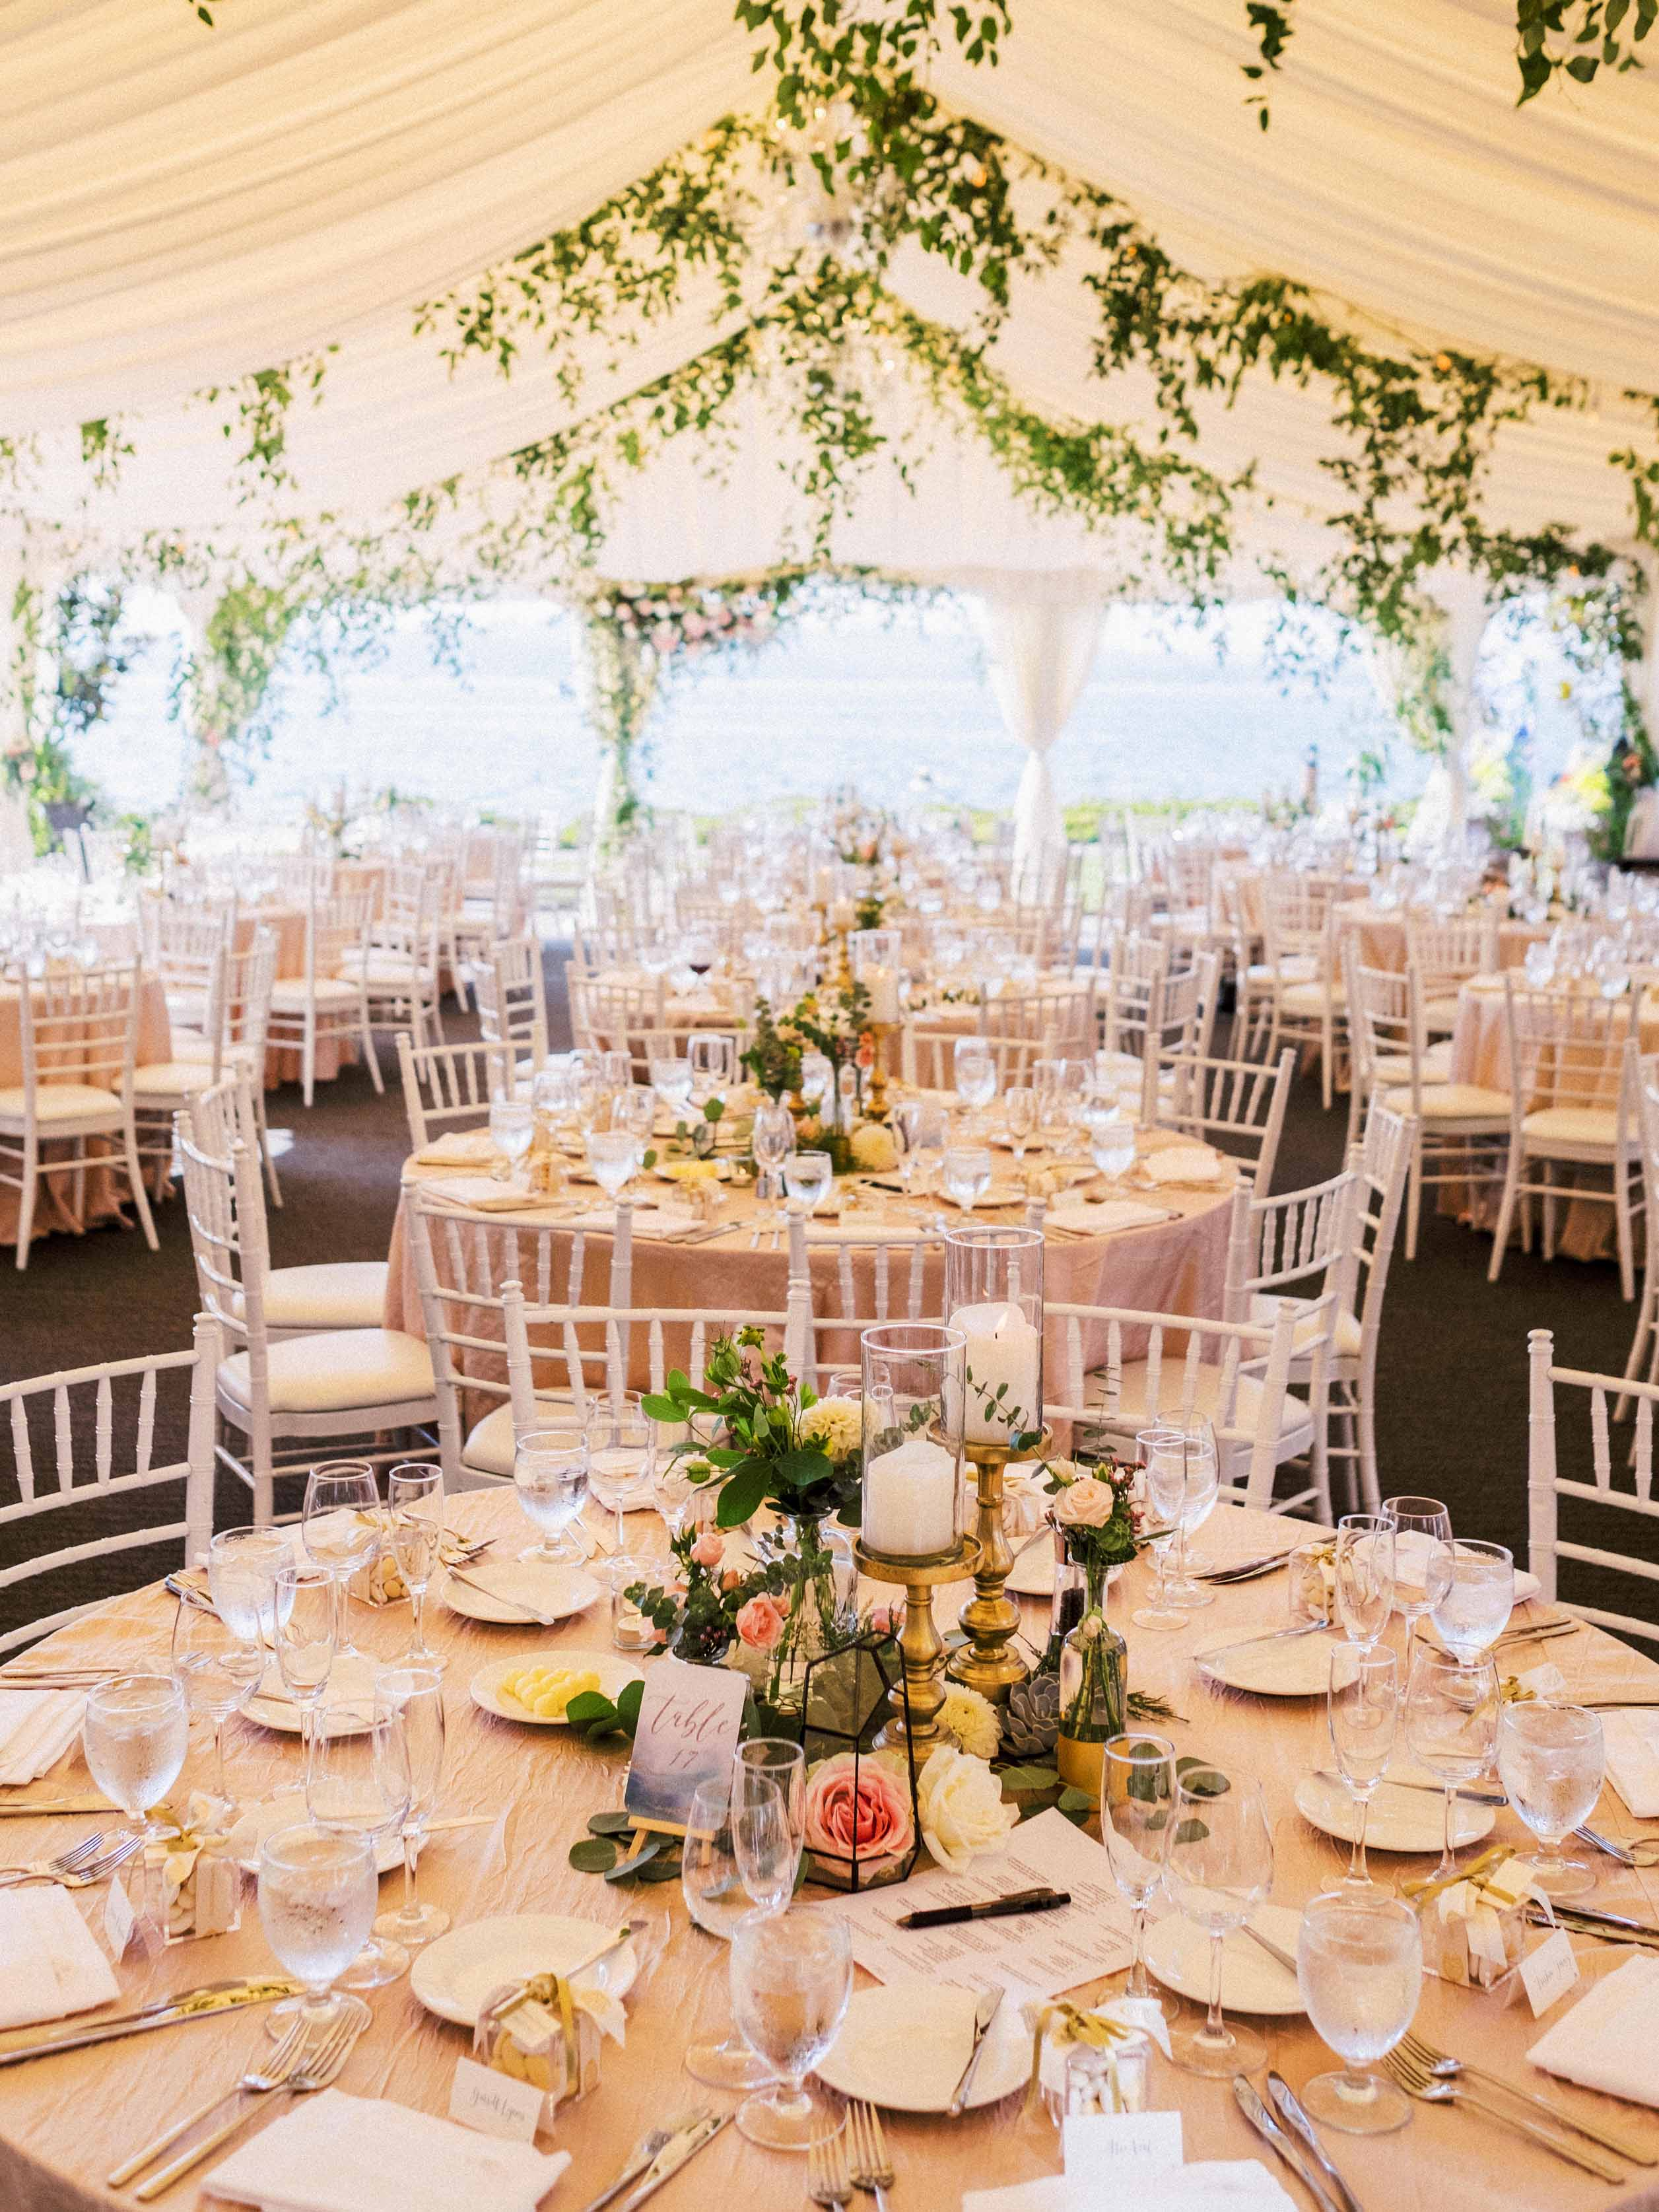 Guest tables at wedding reception, centerpieces with candles and blooms - Woodmark Hotel Wedding by Flora Nova Design Seattle